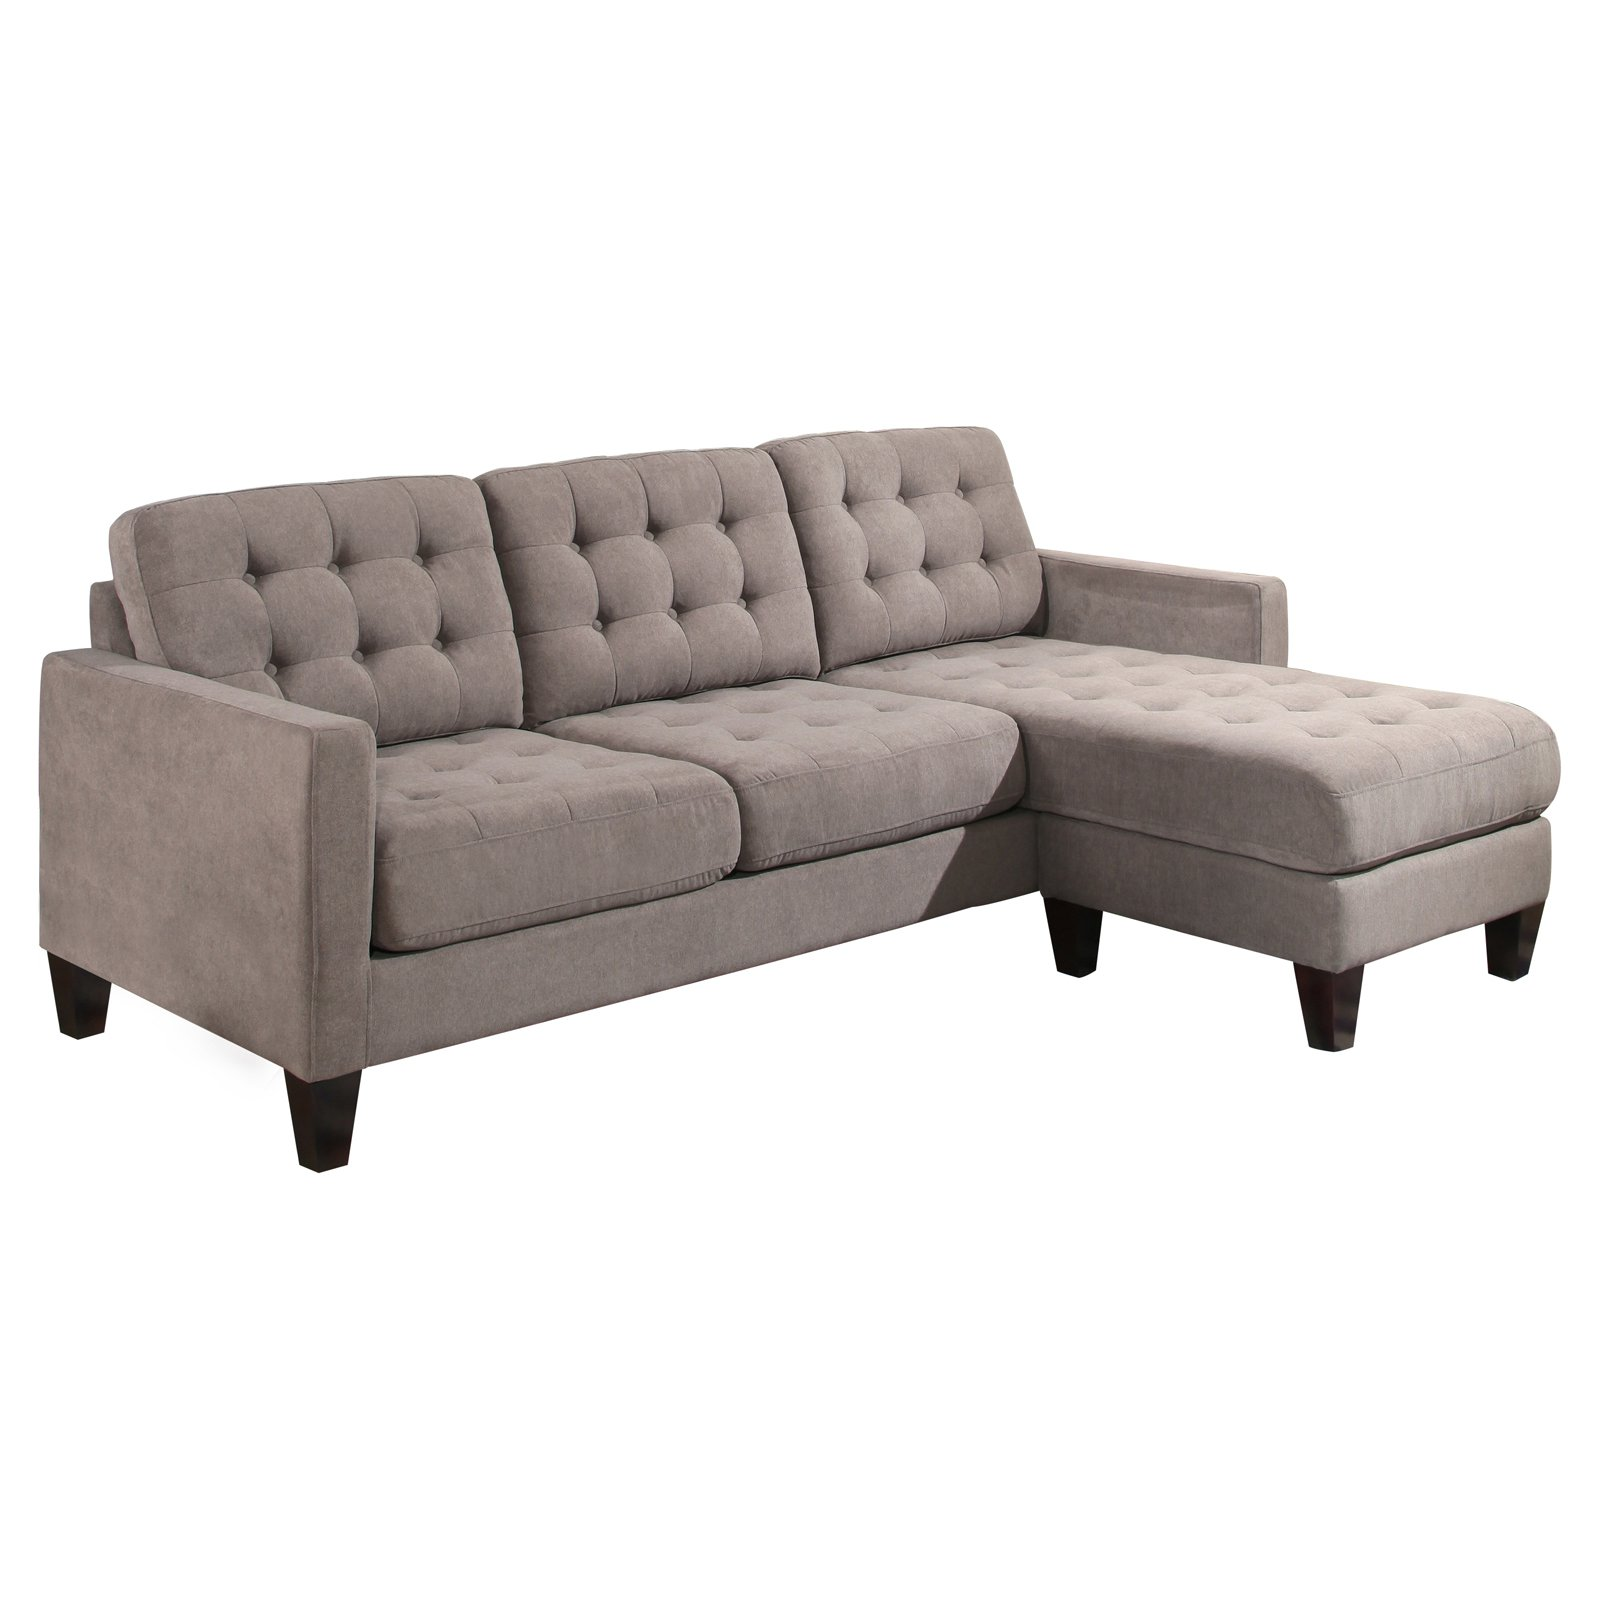 Abbyson Robbinson Reversible Sectional